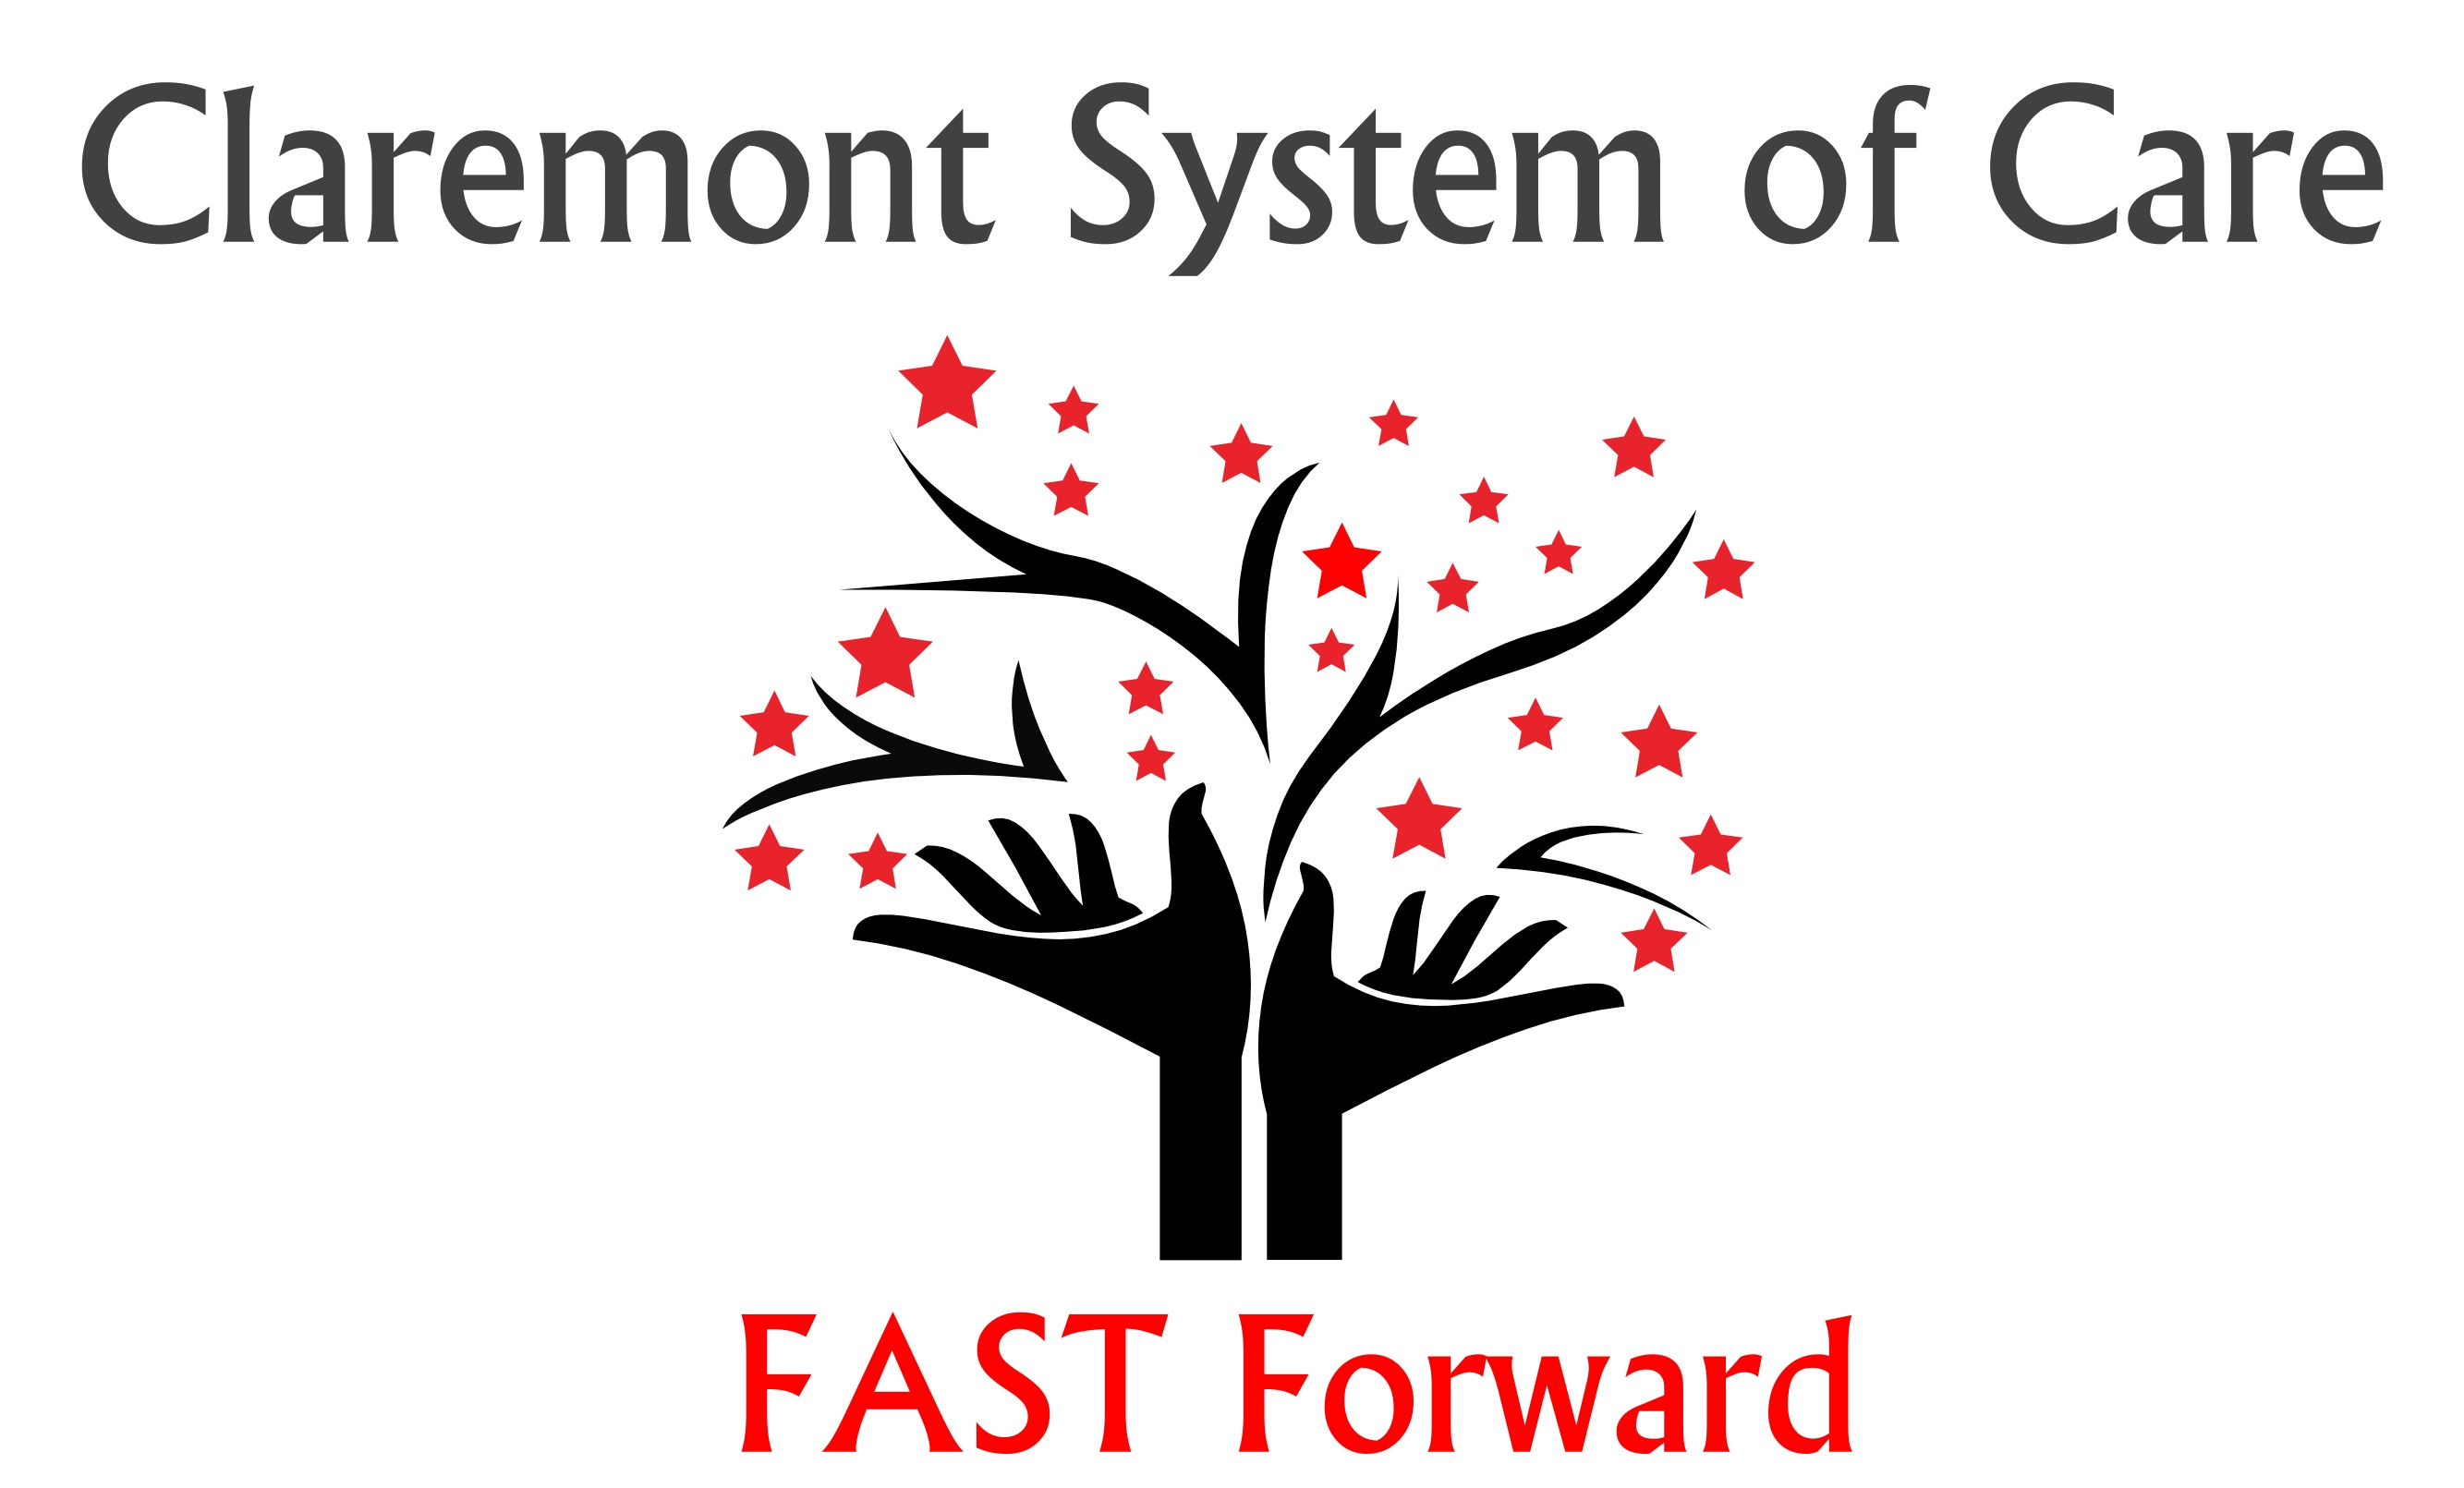 Claremont System of Care